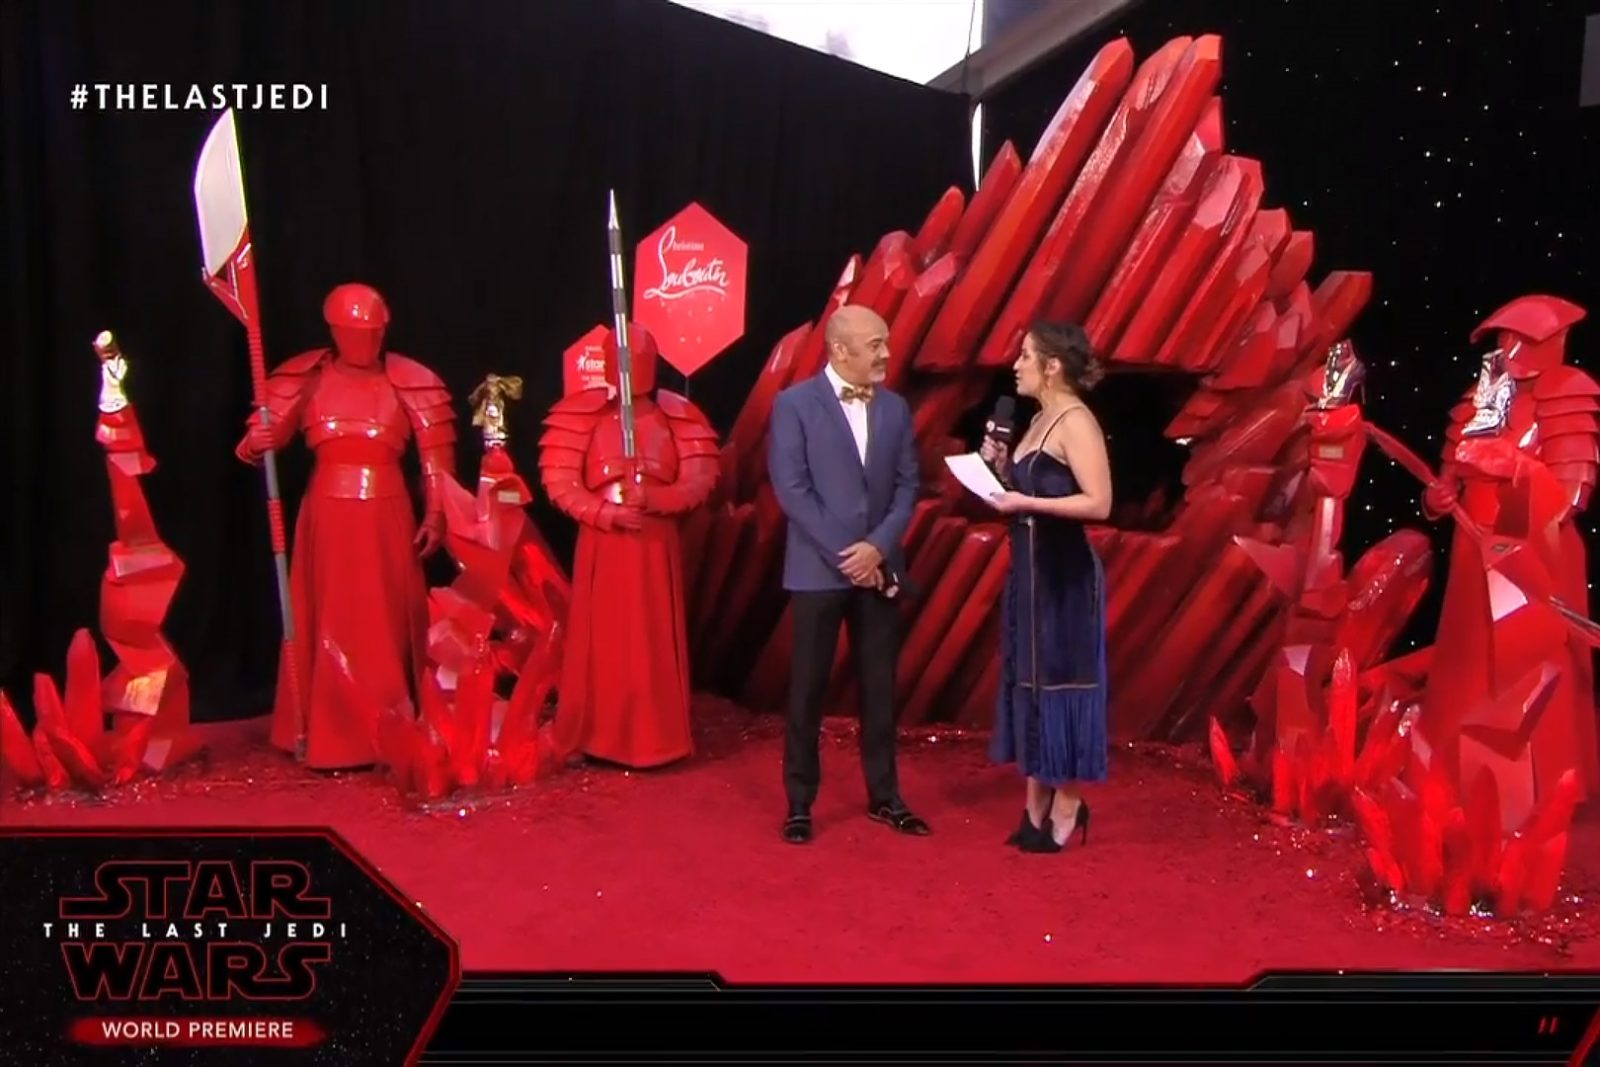 Christian Louboutin at the TLJ Premiere